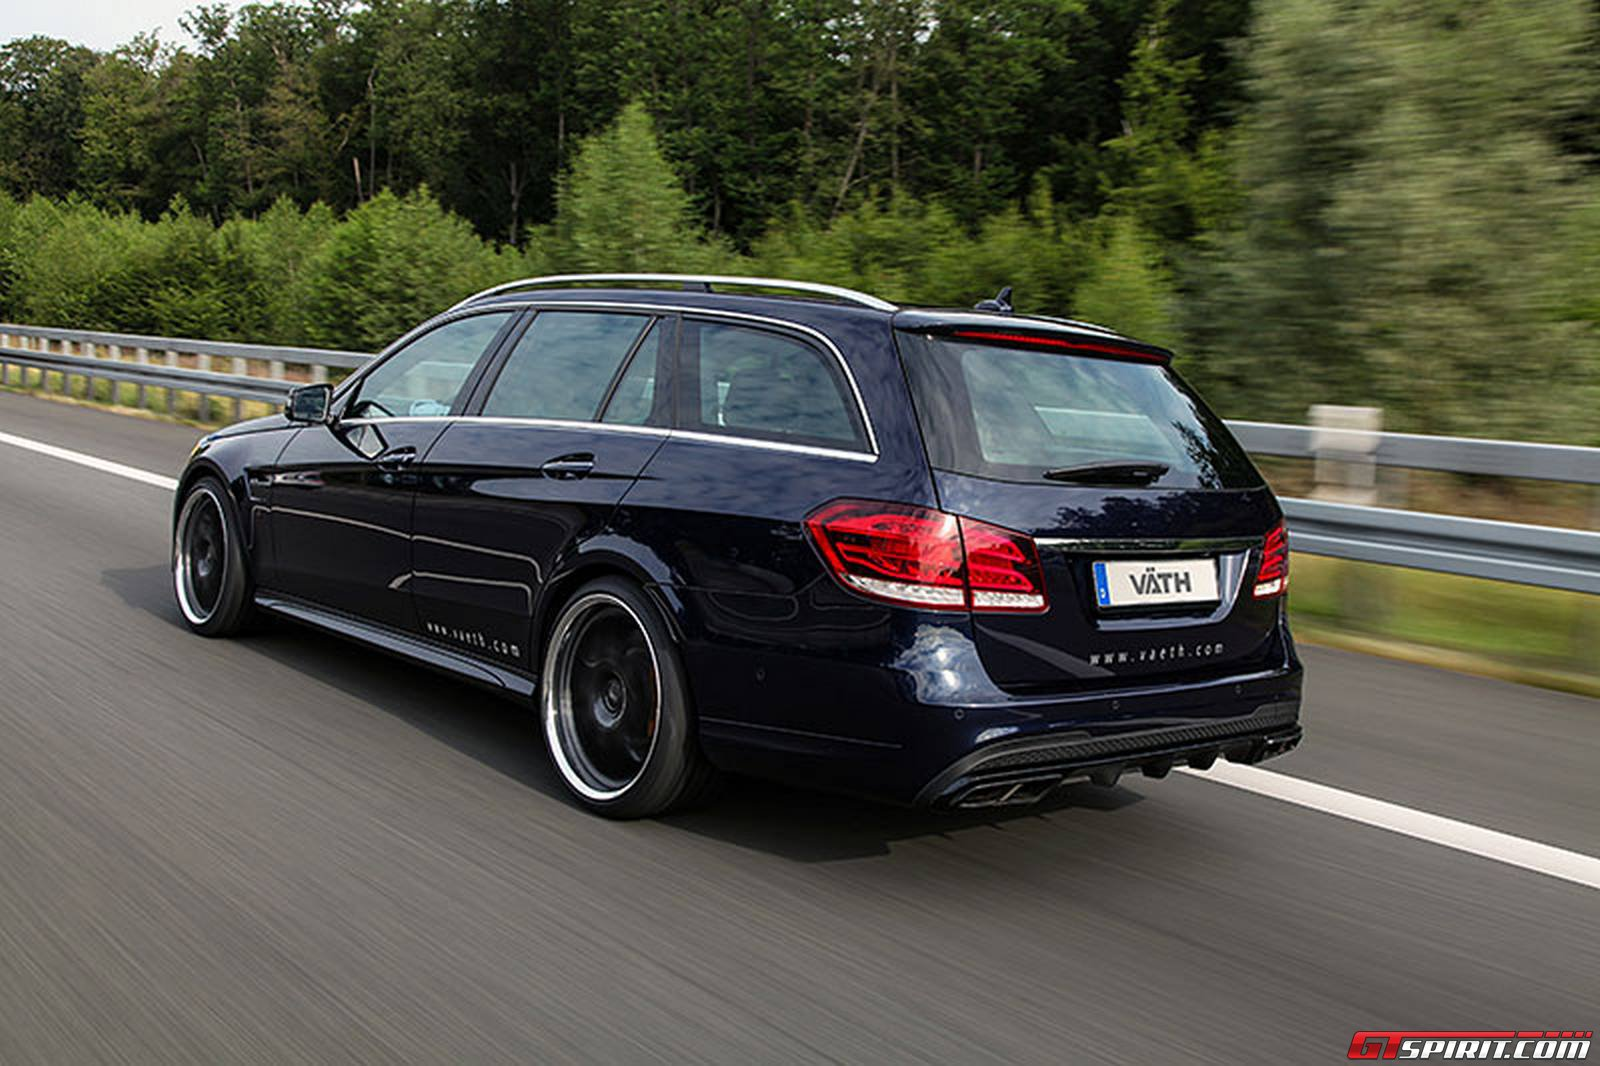 Official mercedes benz e63 amg s by vath gtspirit for Mercedes benz e63 amg s